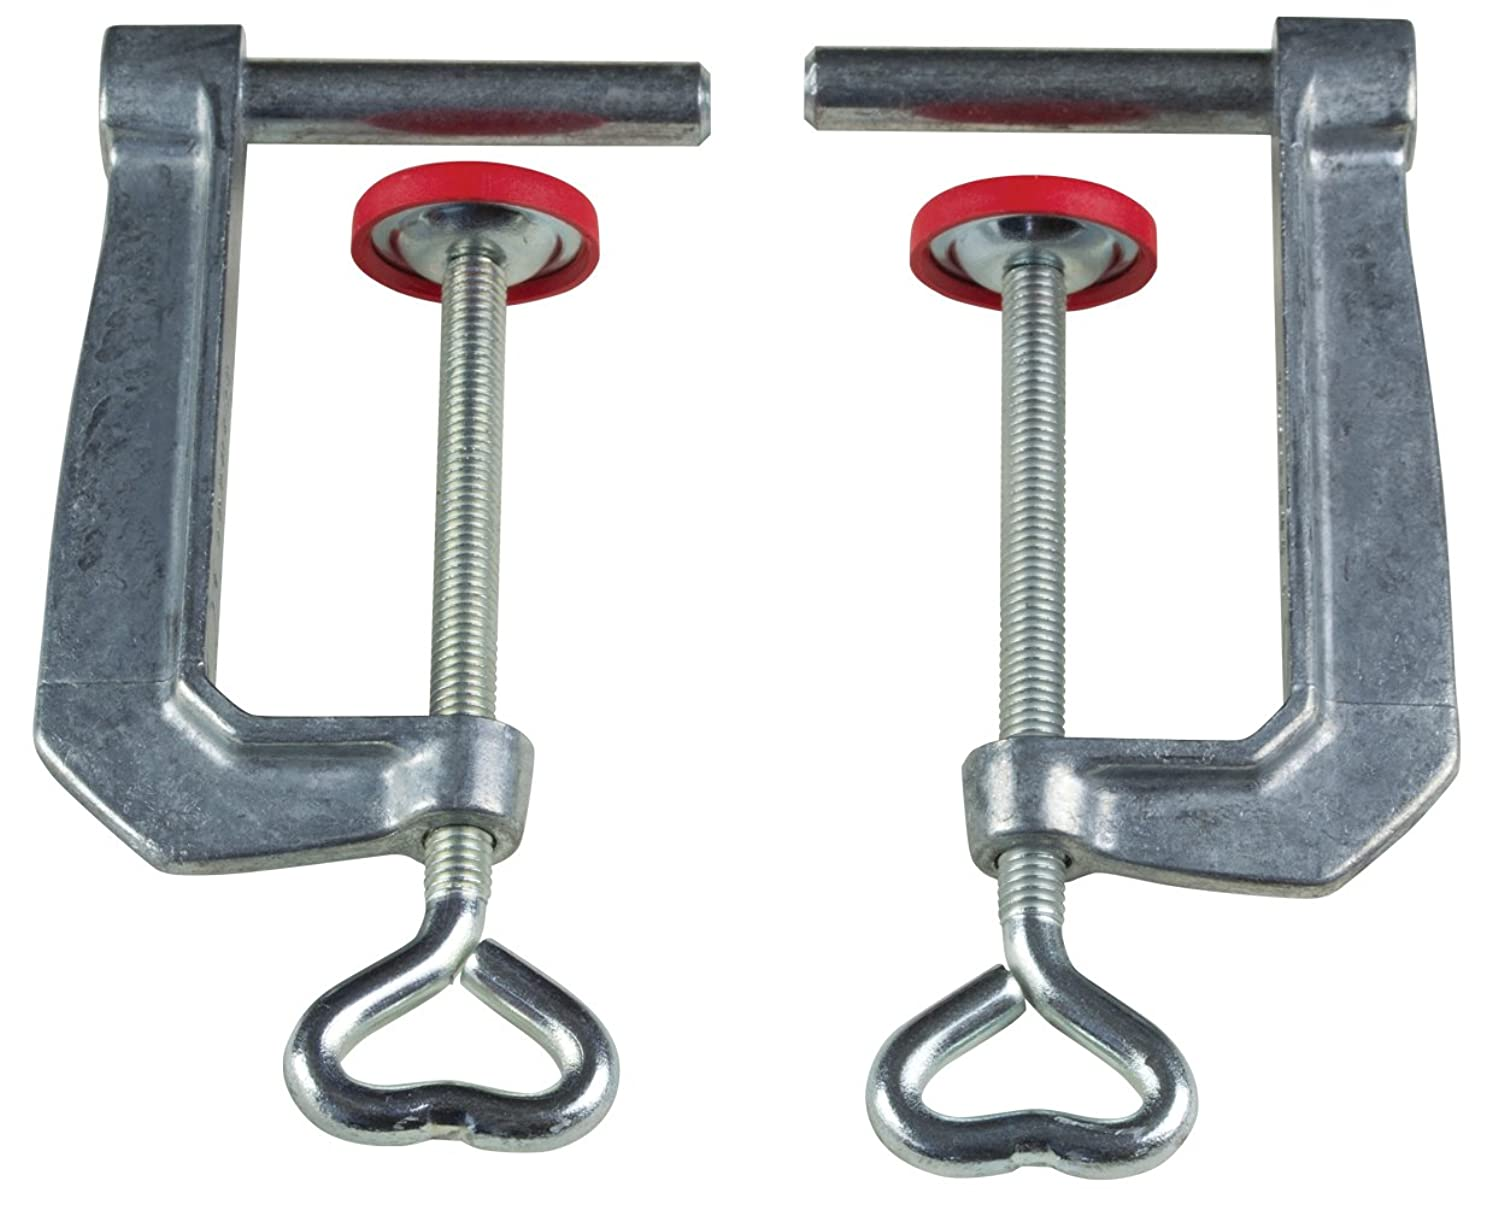 Bessey TK-6 Table Clamp